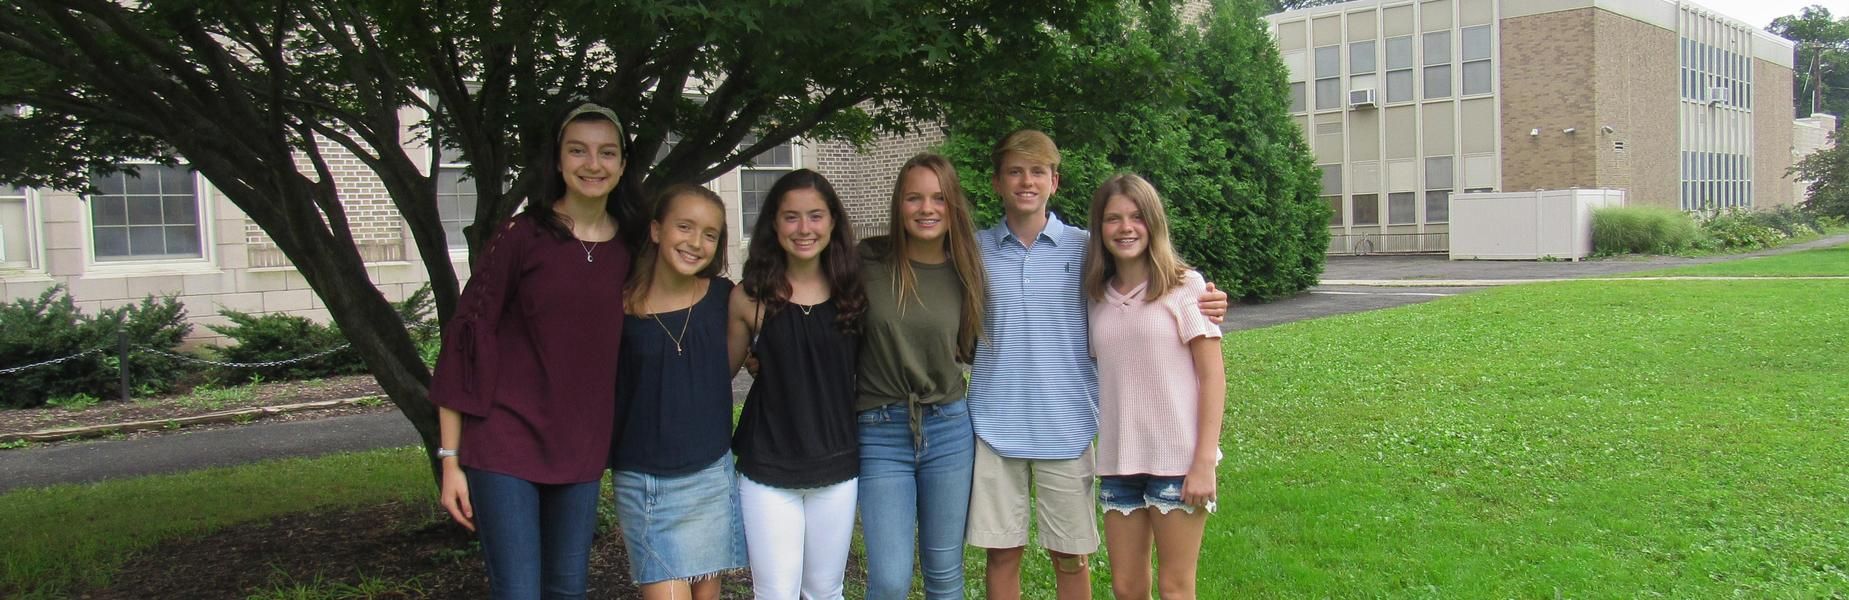 Members of the Roosevelt Intermediate School student council pose for a picture outside of the school.